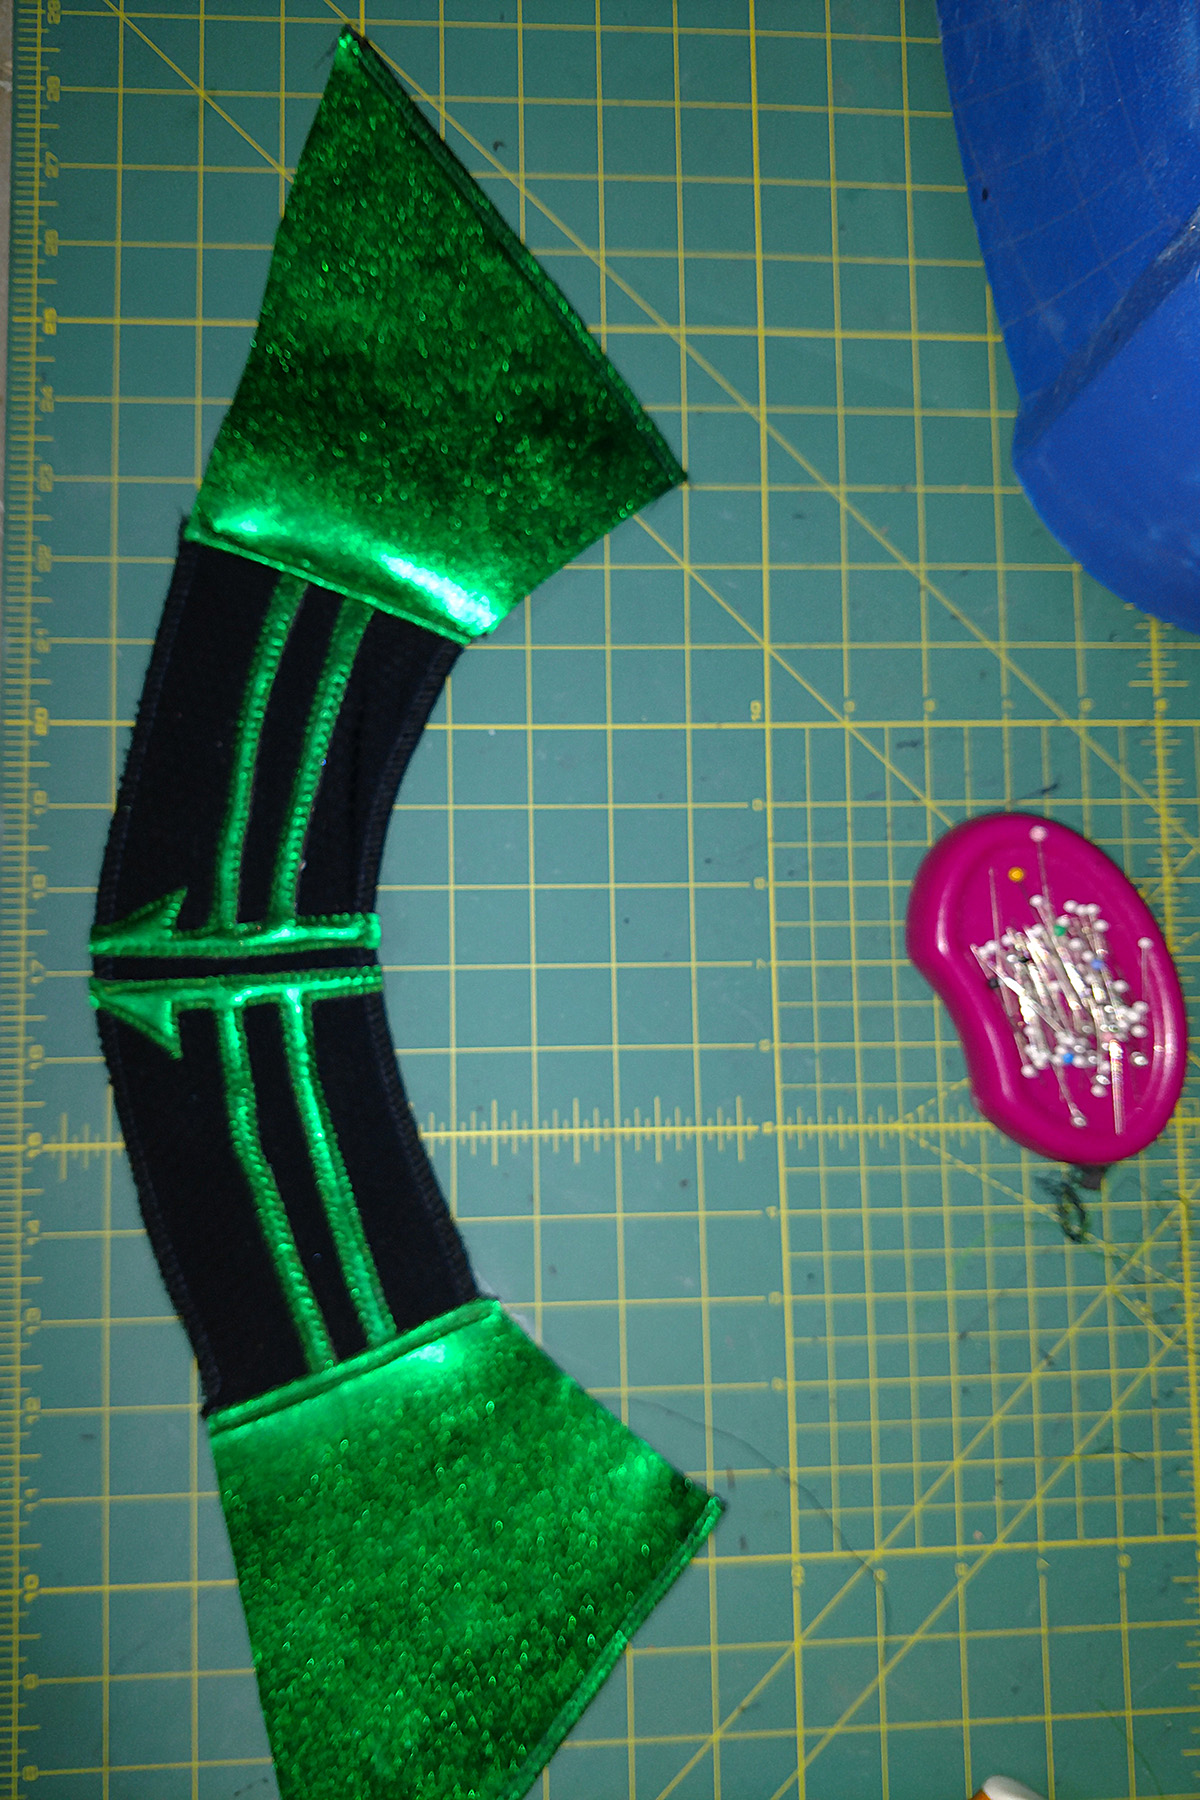 An intricately sewn green and black collar piece for a Hela costume.